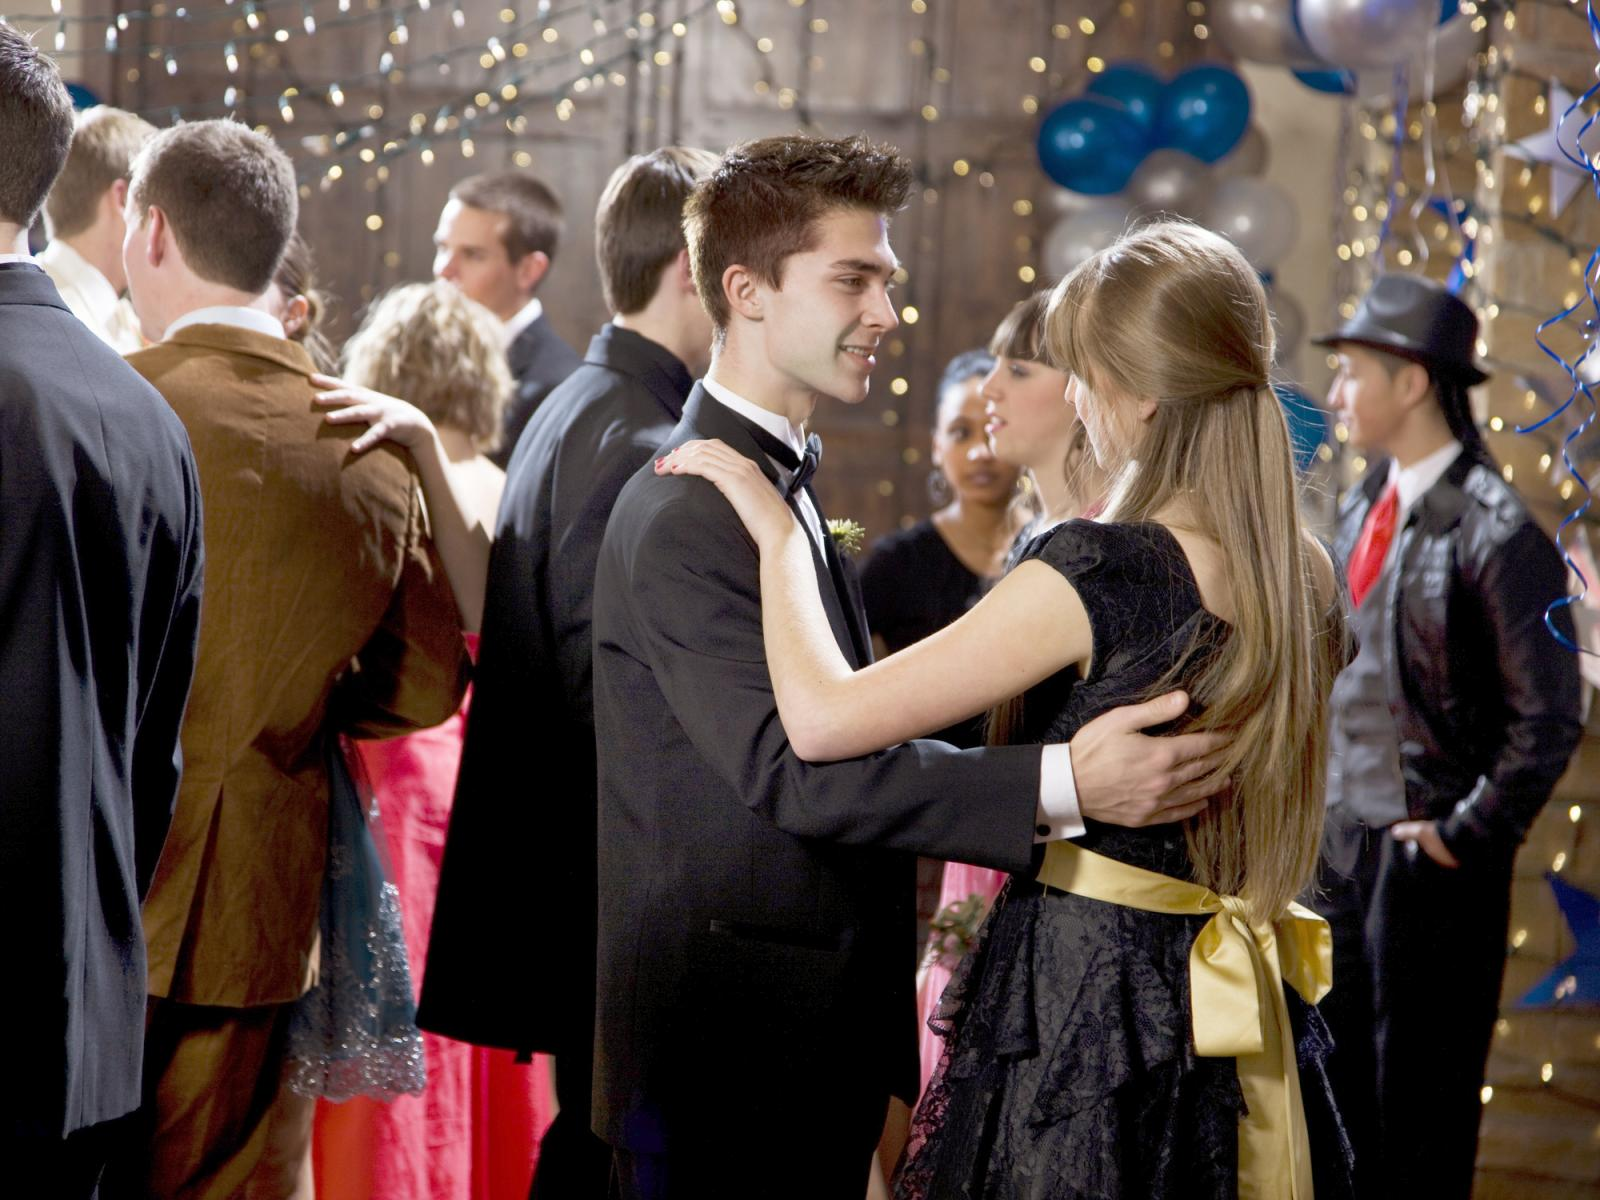 Teenage couples dancing at prom